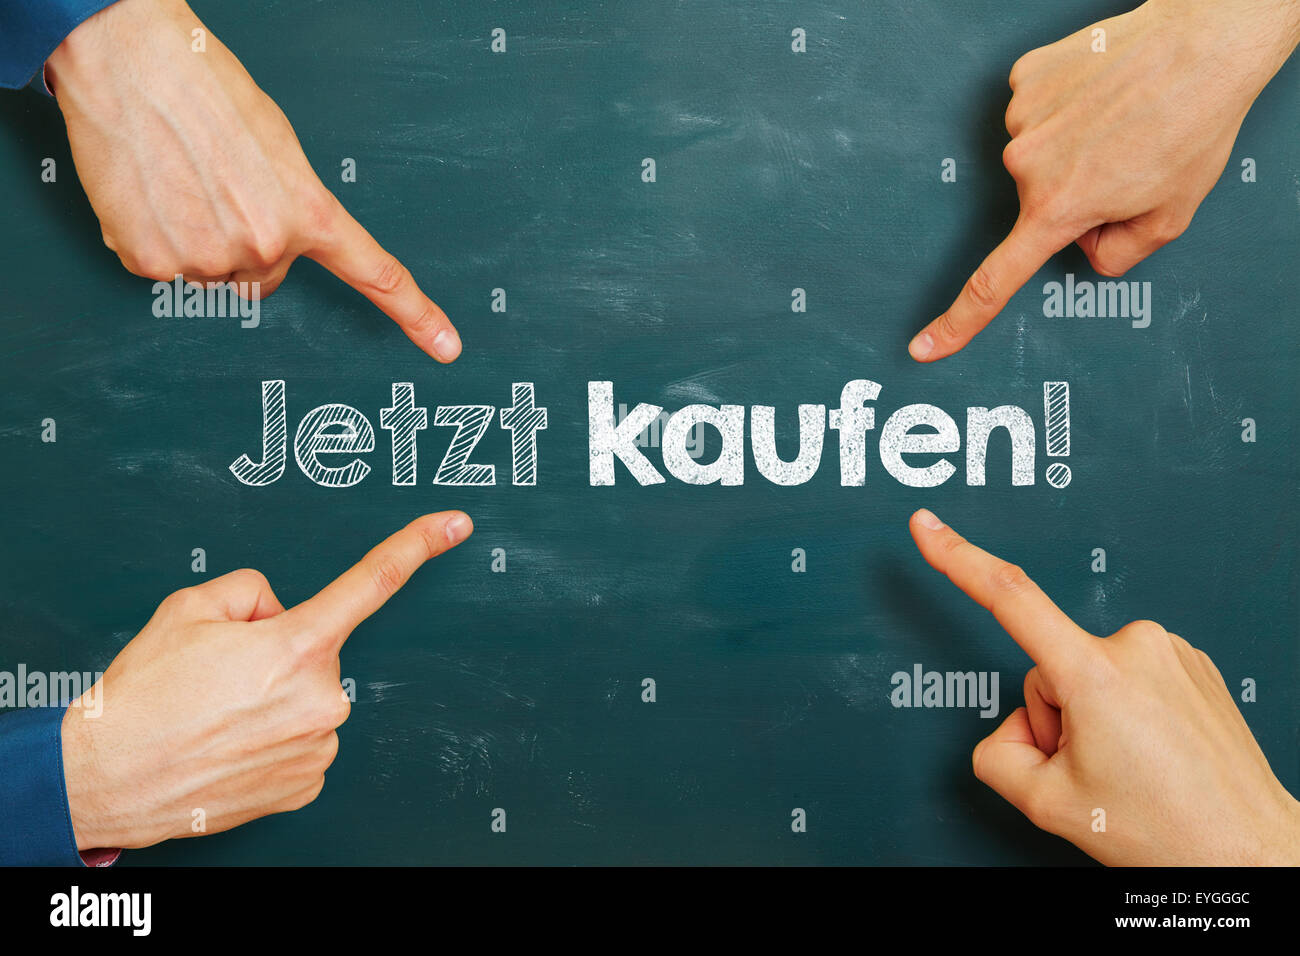 hands pointing to German slogan 'Jetzt kaufen!' (buy now!) on a chalkboard - Stock Image